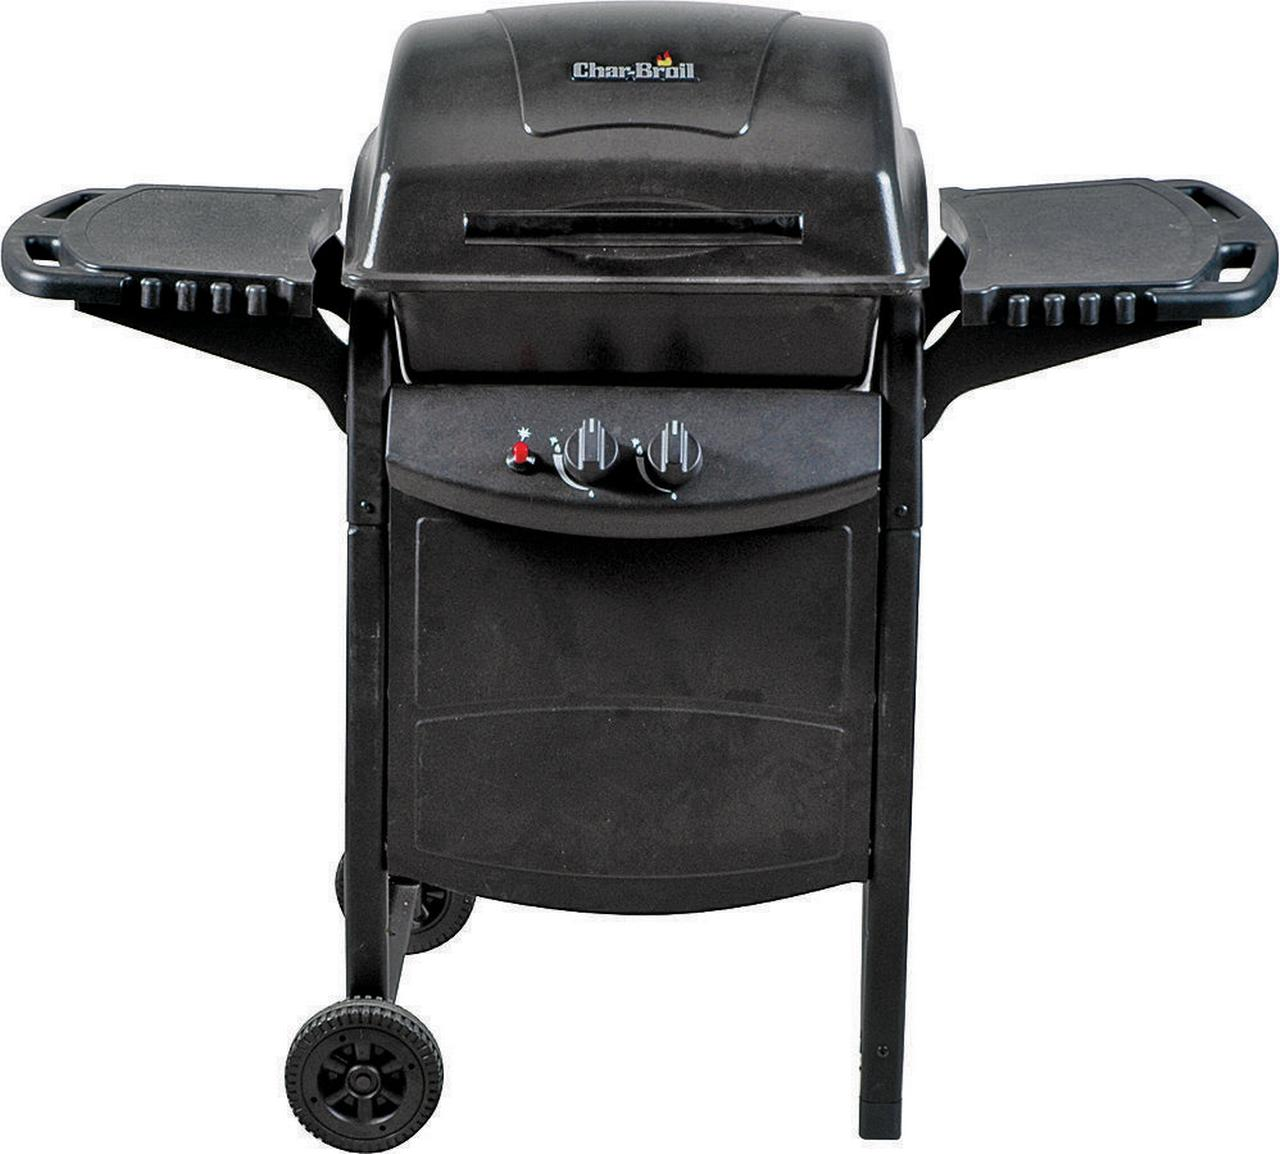 Char-Broil 2-Burner Gas Grill